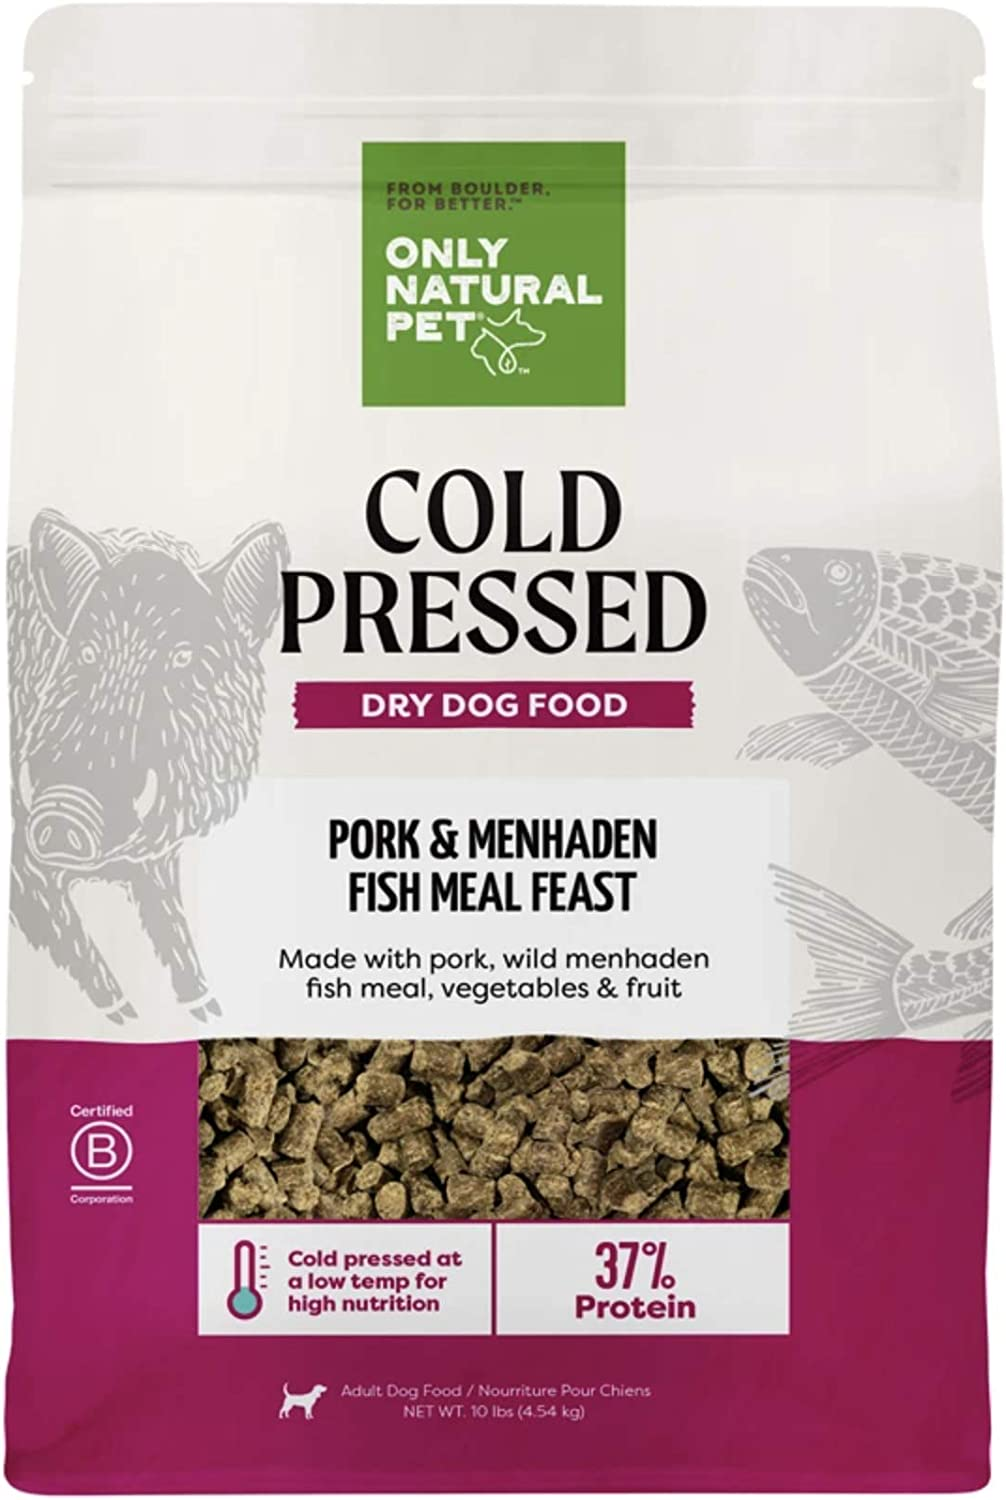 Only Natural Pet Pork & Menhaden Cold Pressed Dog Food - Nutrient Rich and Easy to Digest Dry Dog Food, 10 Lb Bag